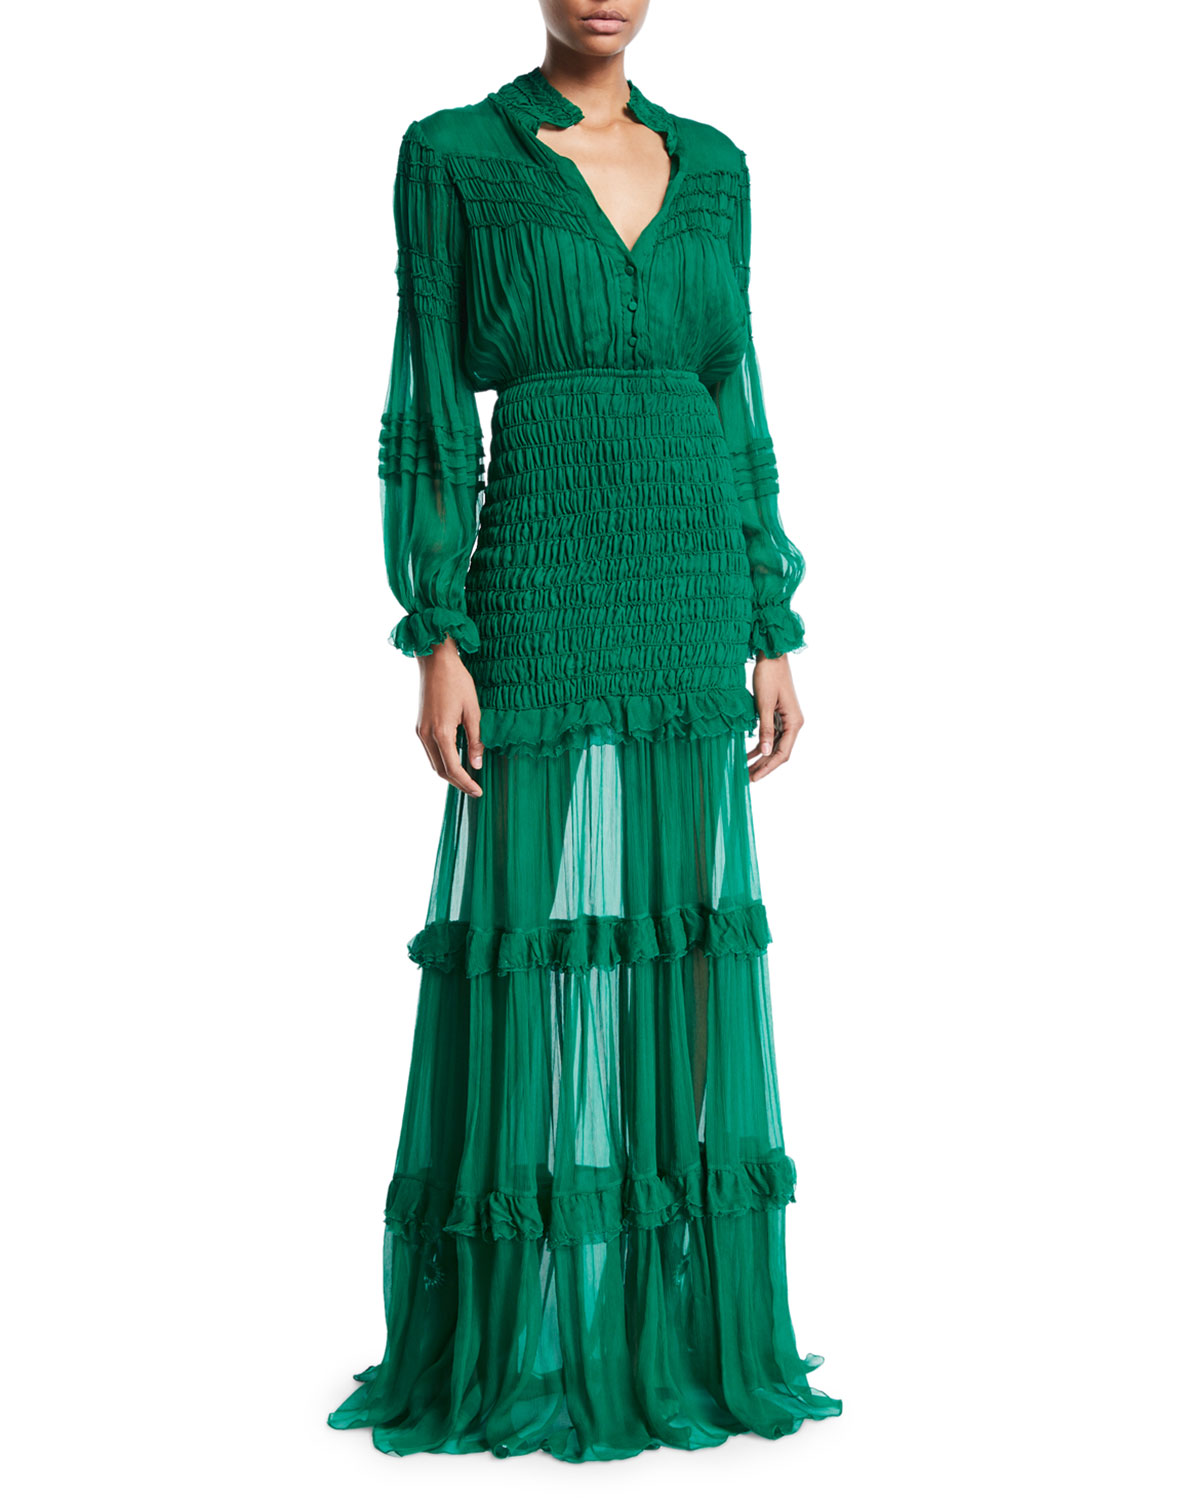 Alexis Sinclair Smocked Ruffle Button Front Dress Neiman